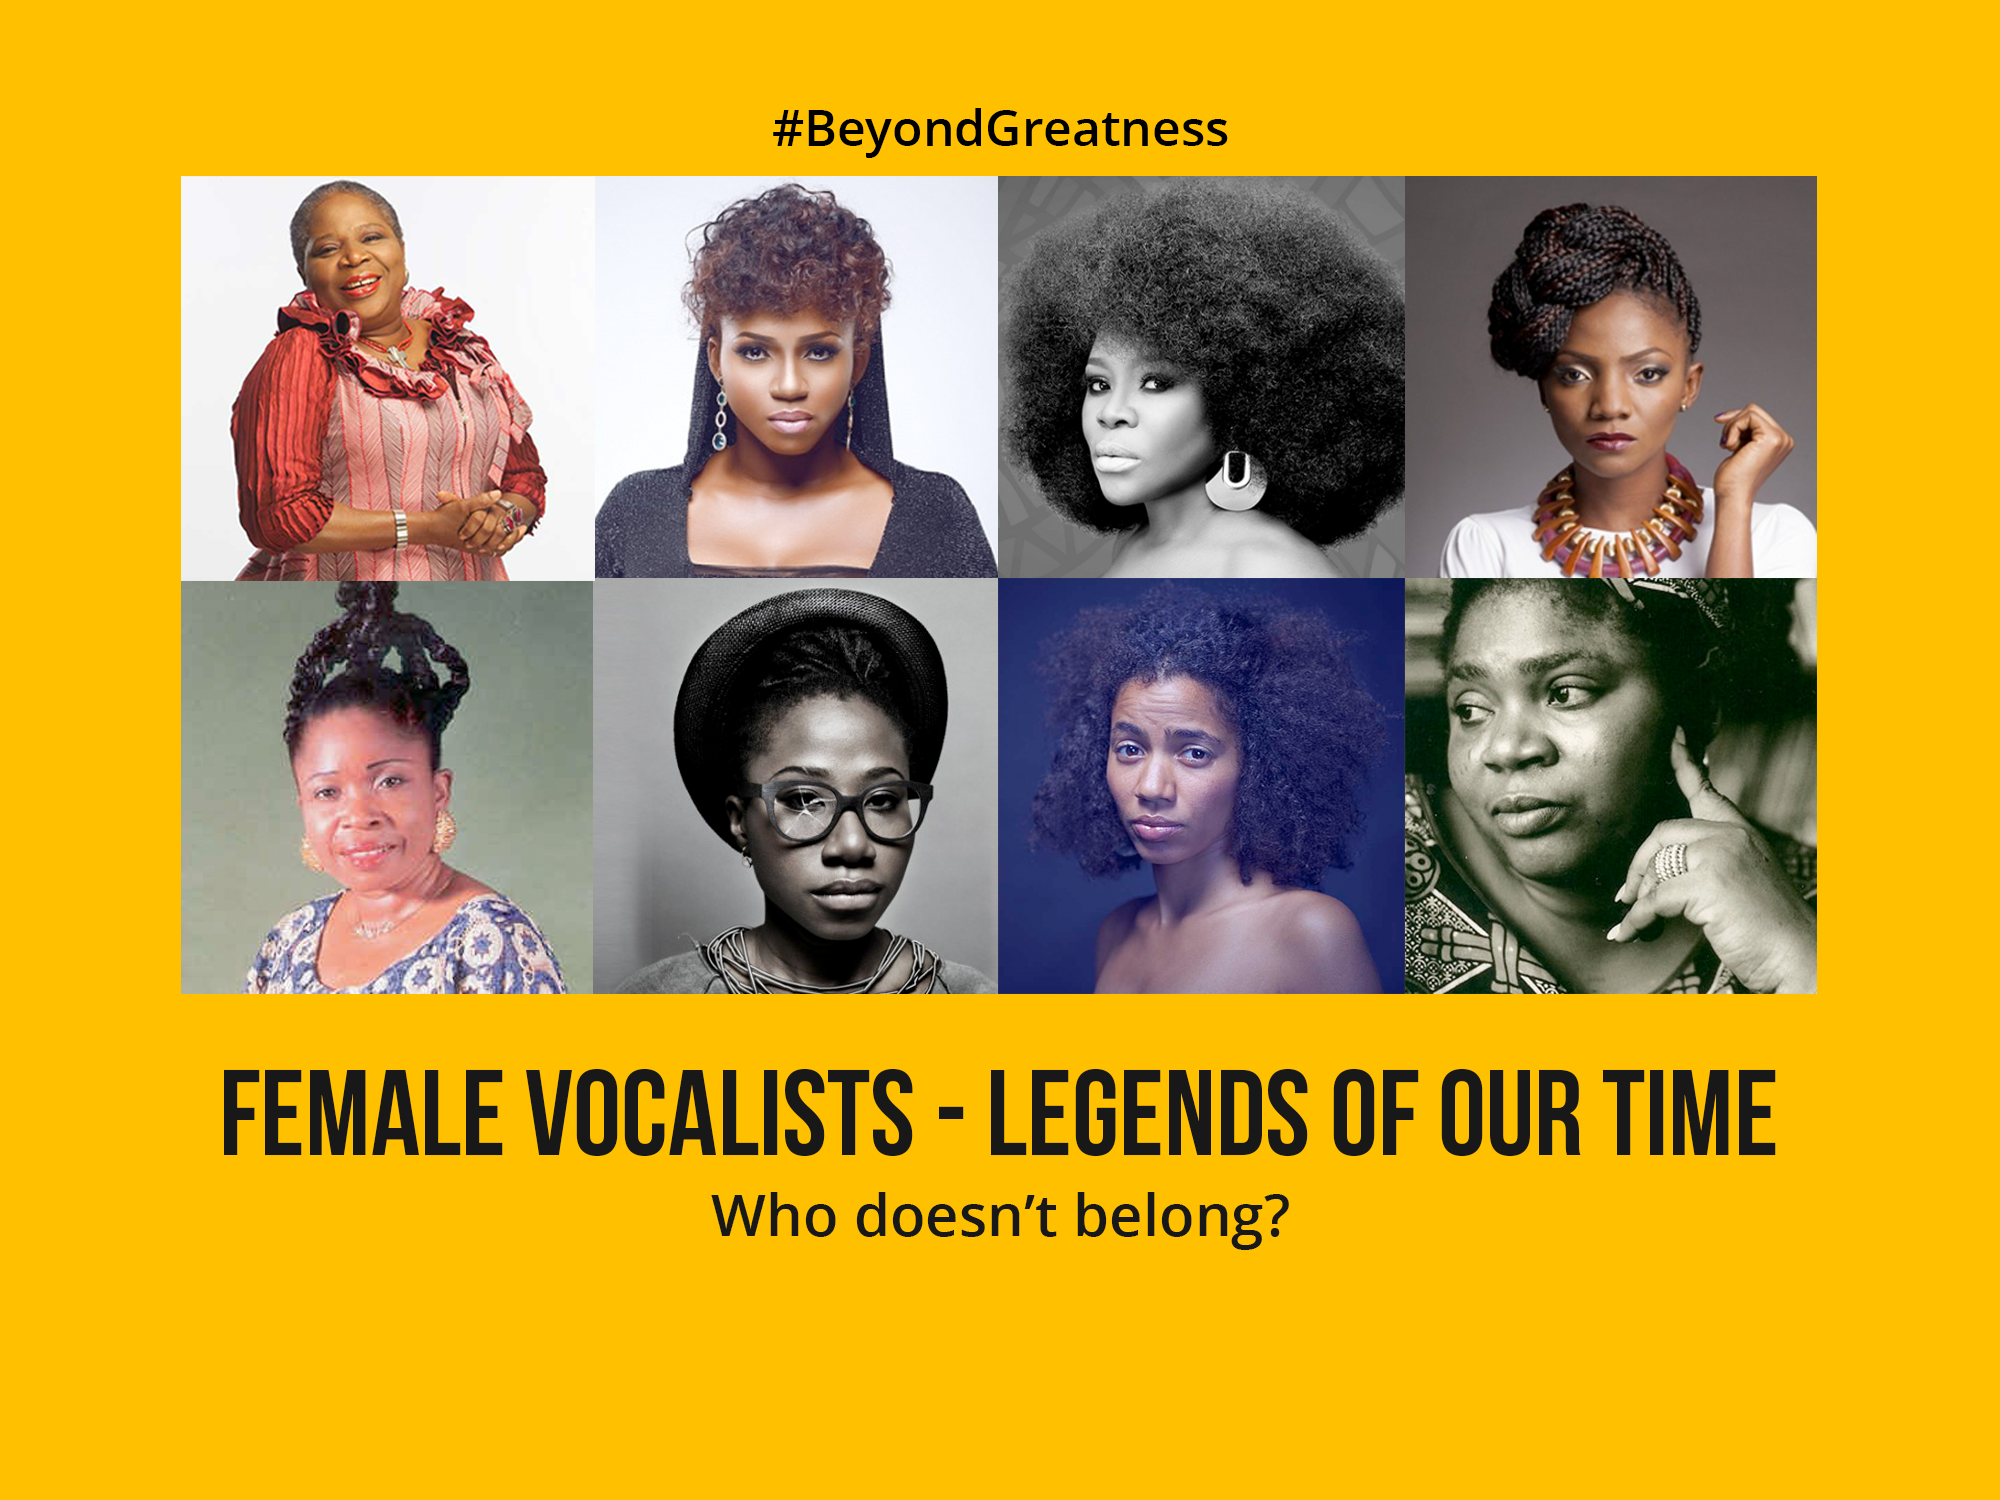 'Adesua Etomi and Small Doctor are not Legends!' Nigerians react to #BeyondGreatness Twitter trend